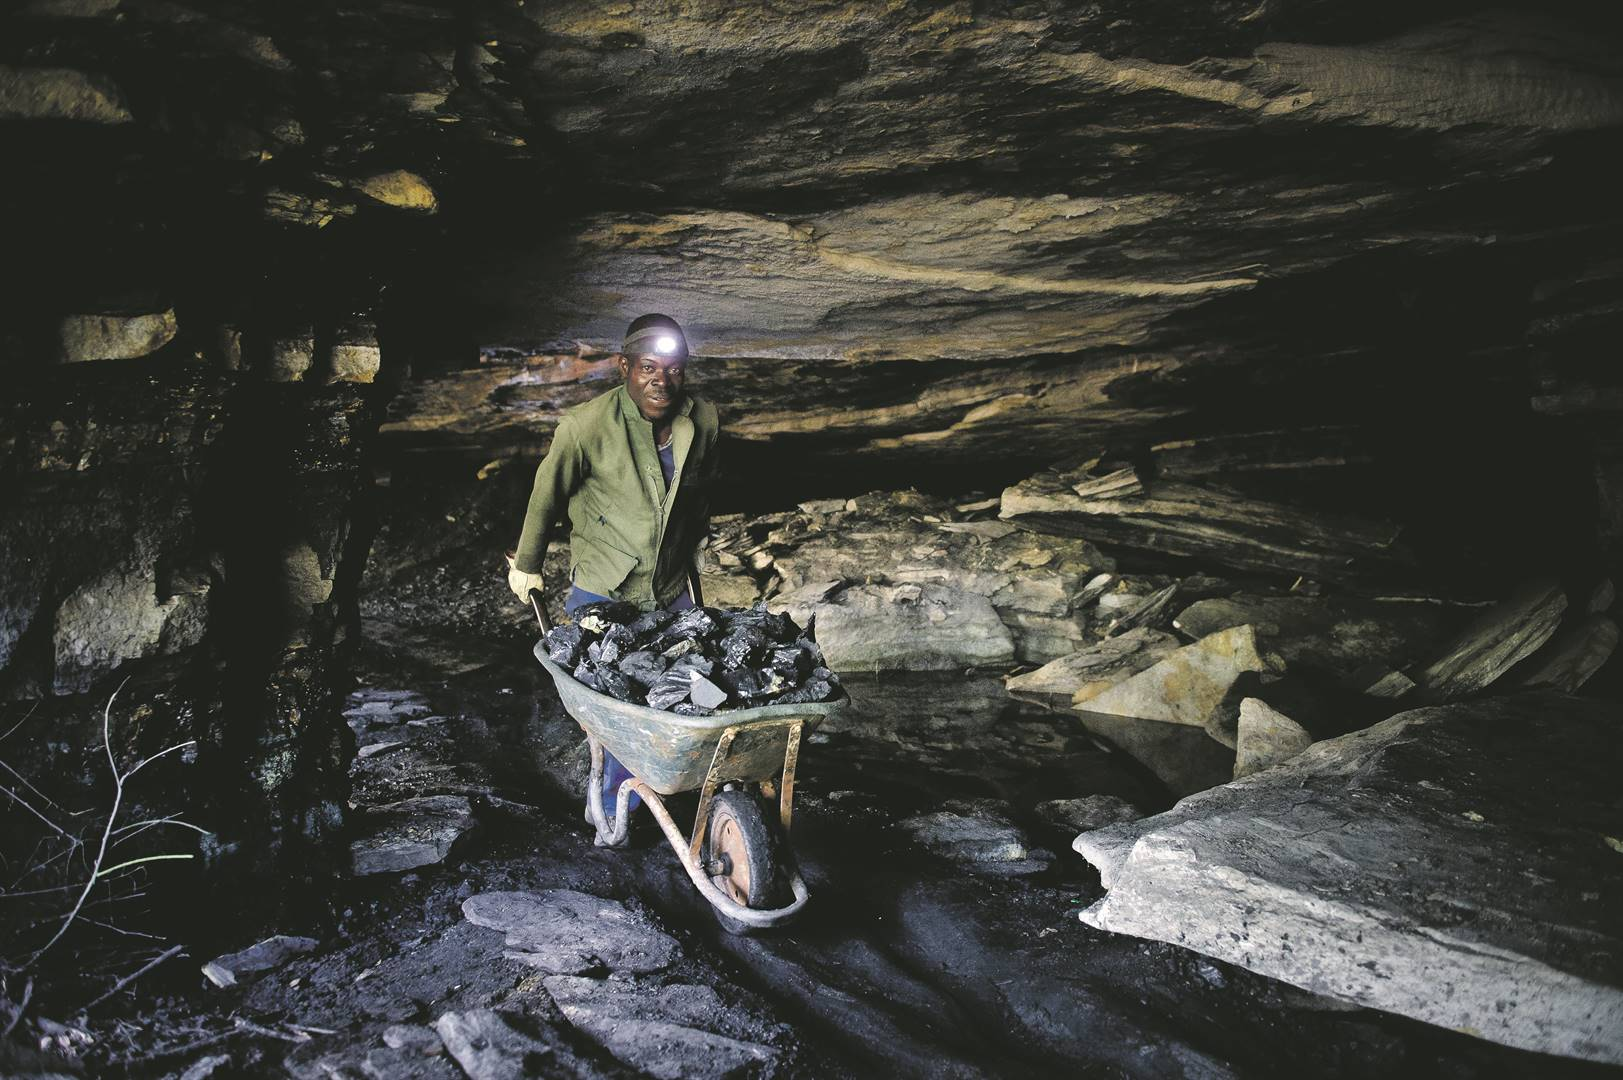 An illegal miner gathers coal in a mine in Ermelo, Mpumalanga. South Africa's lack of coherent policy direction and overreliance on coal will be detrimental to the country. Photo: Nelius Rademan